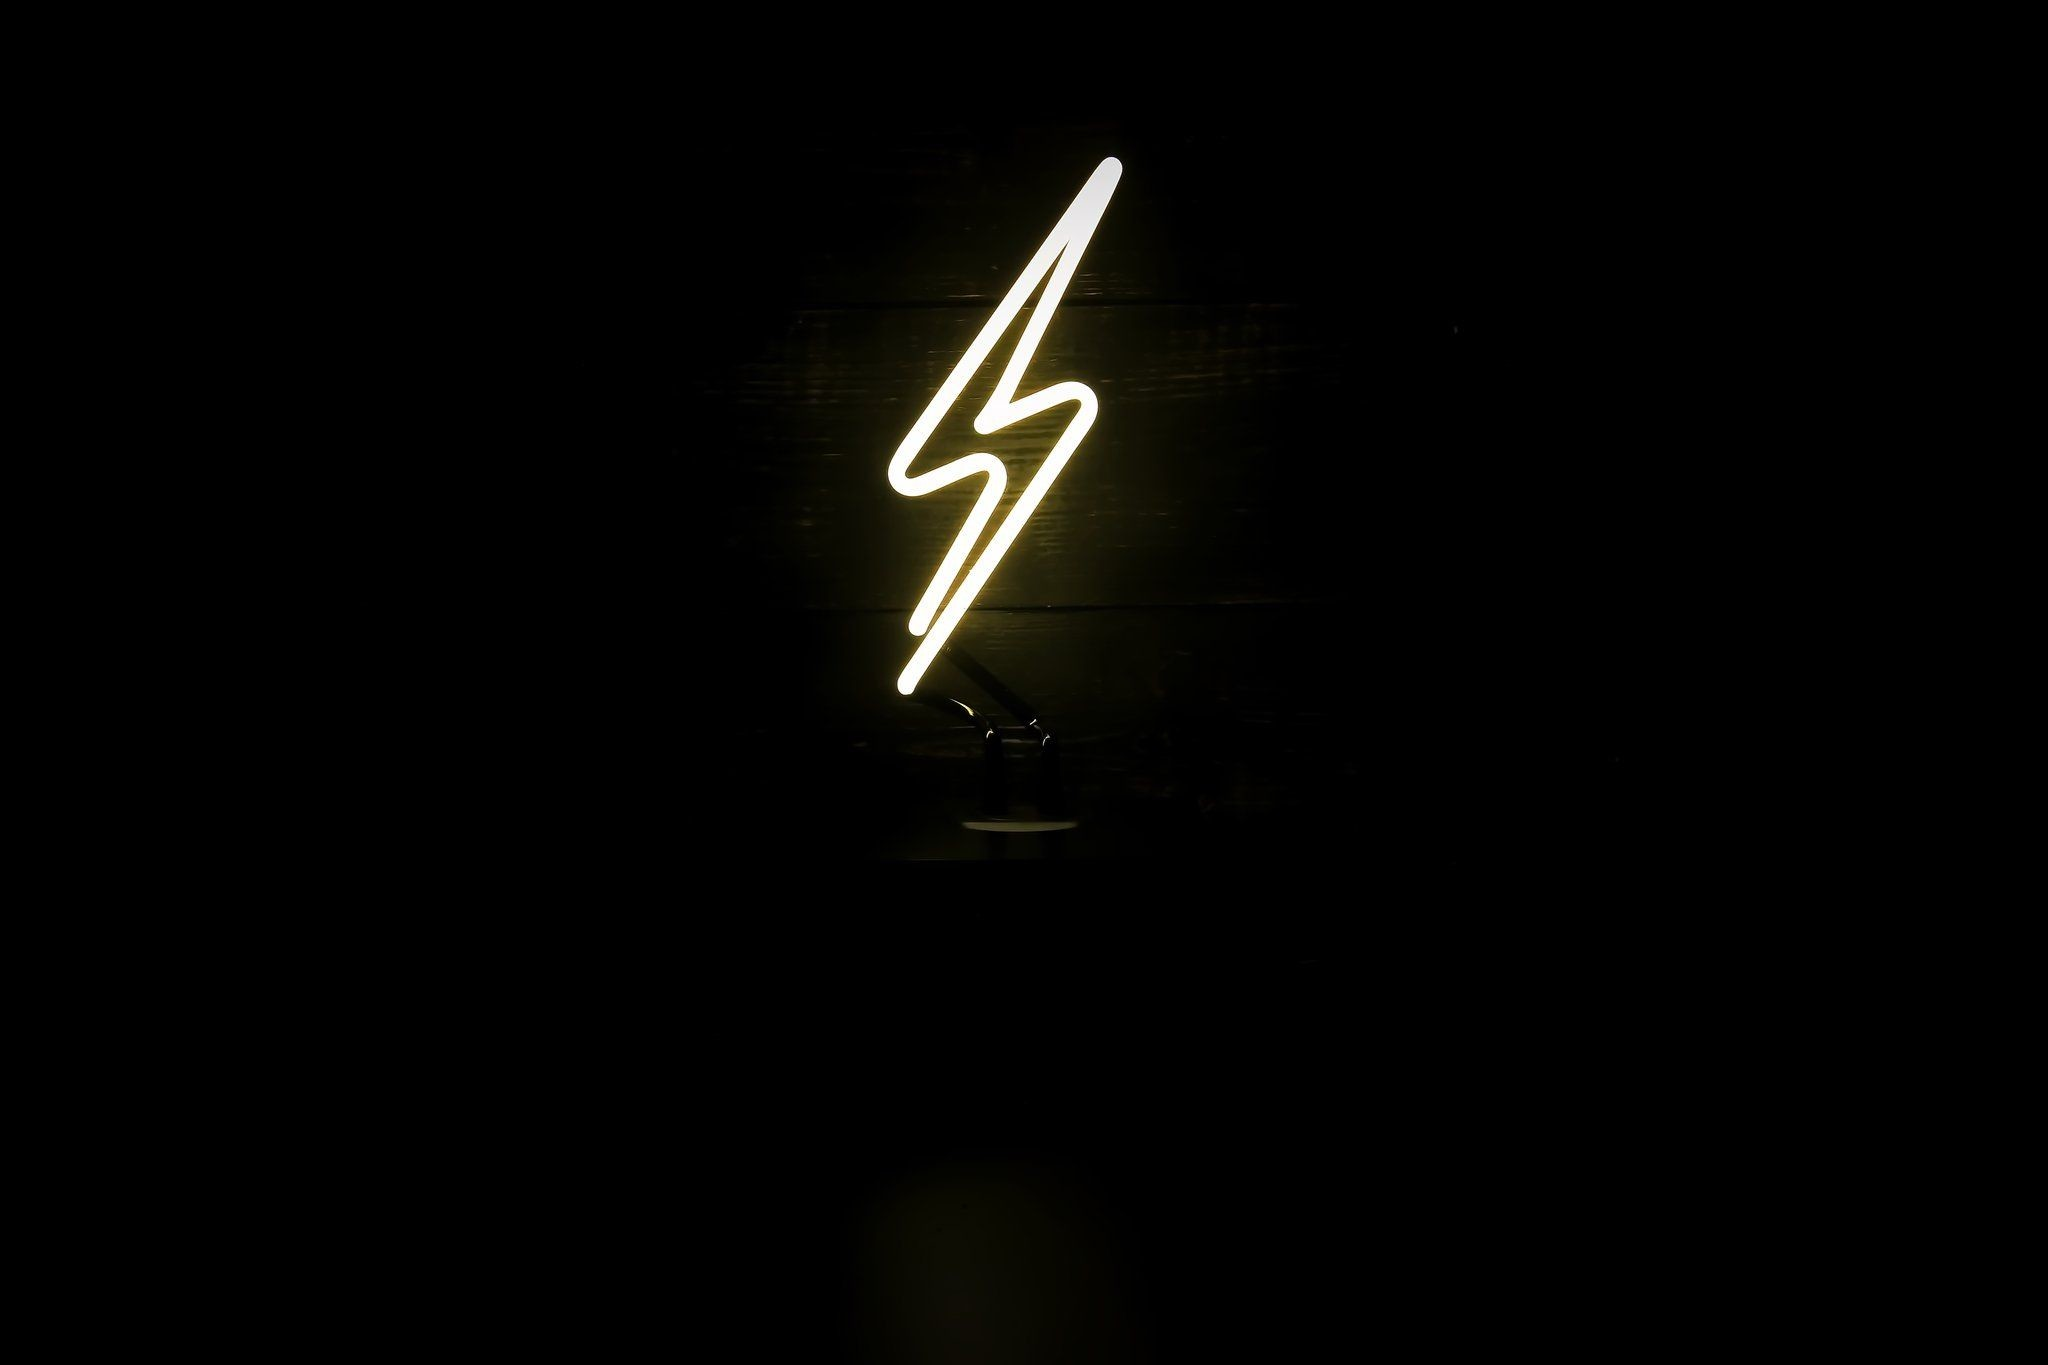 2048x1365 Lightning Bolt Desktop Neon by Noble Gas Industries